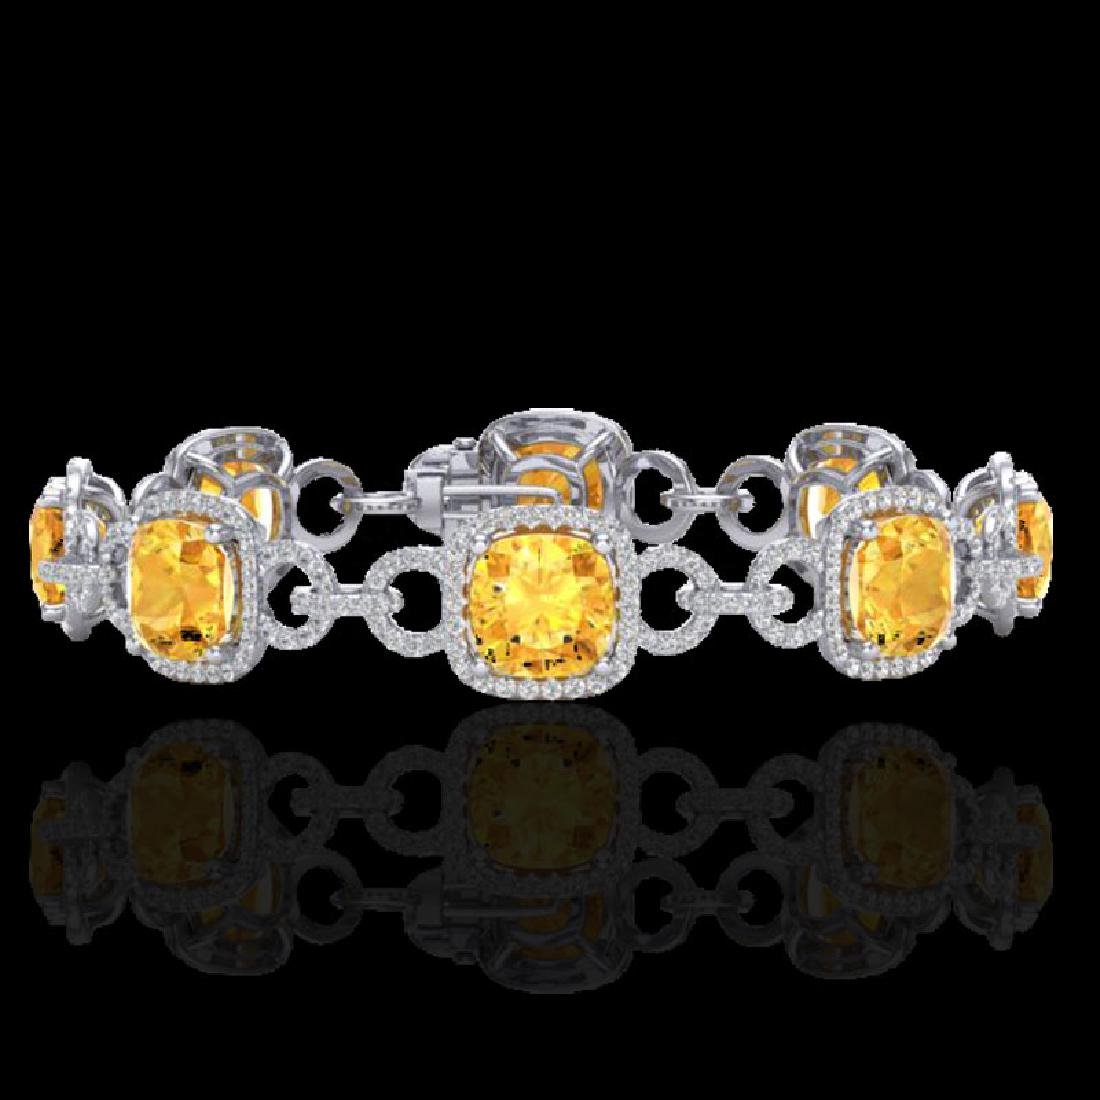 30 CTW Citrine & Micro VS/SI Diamond Bracelet 14K White